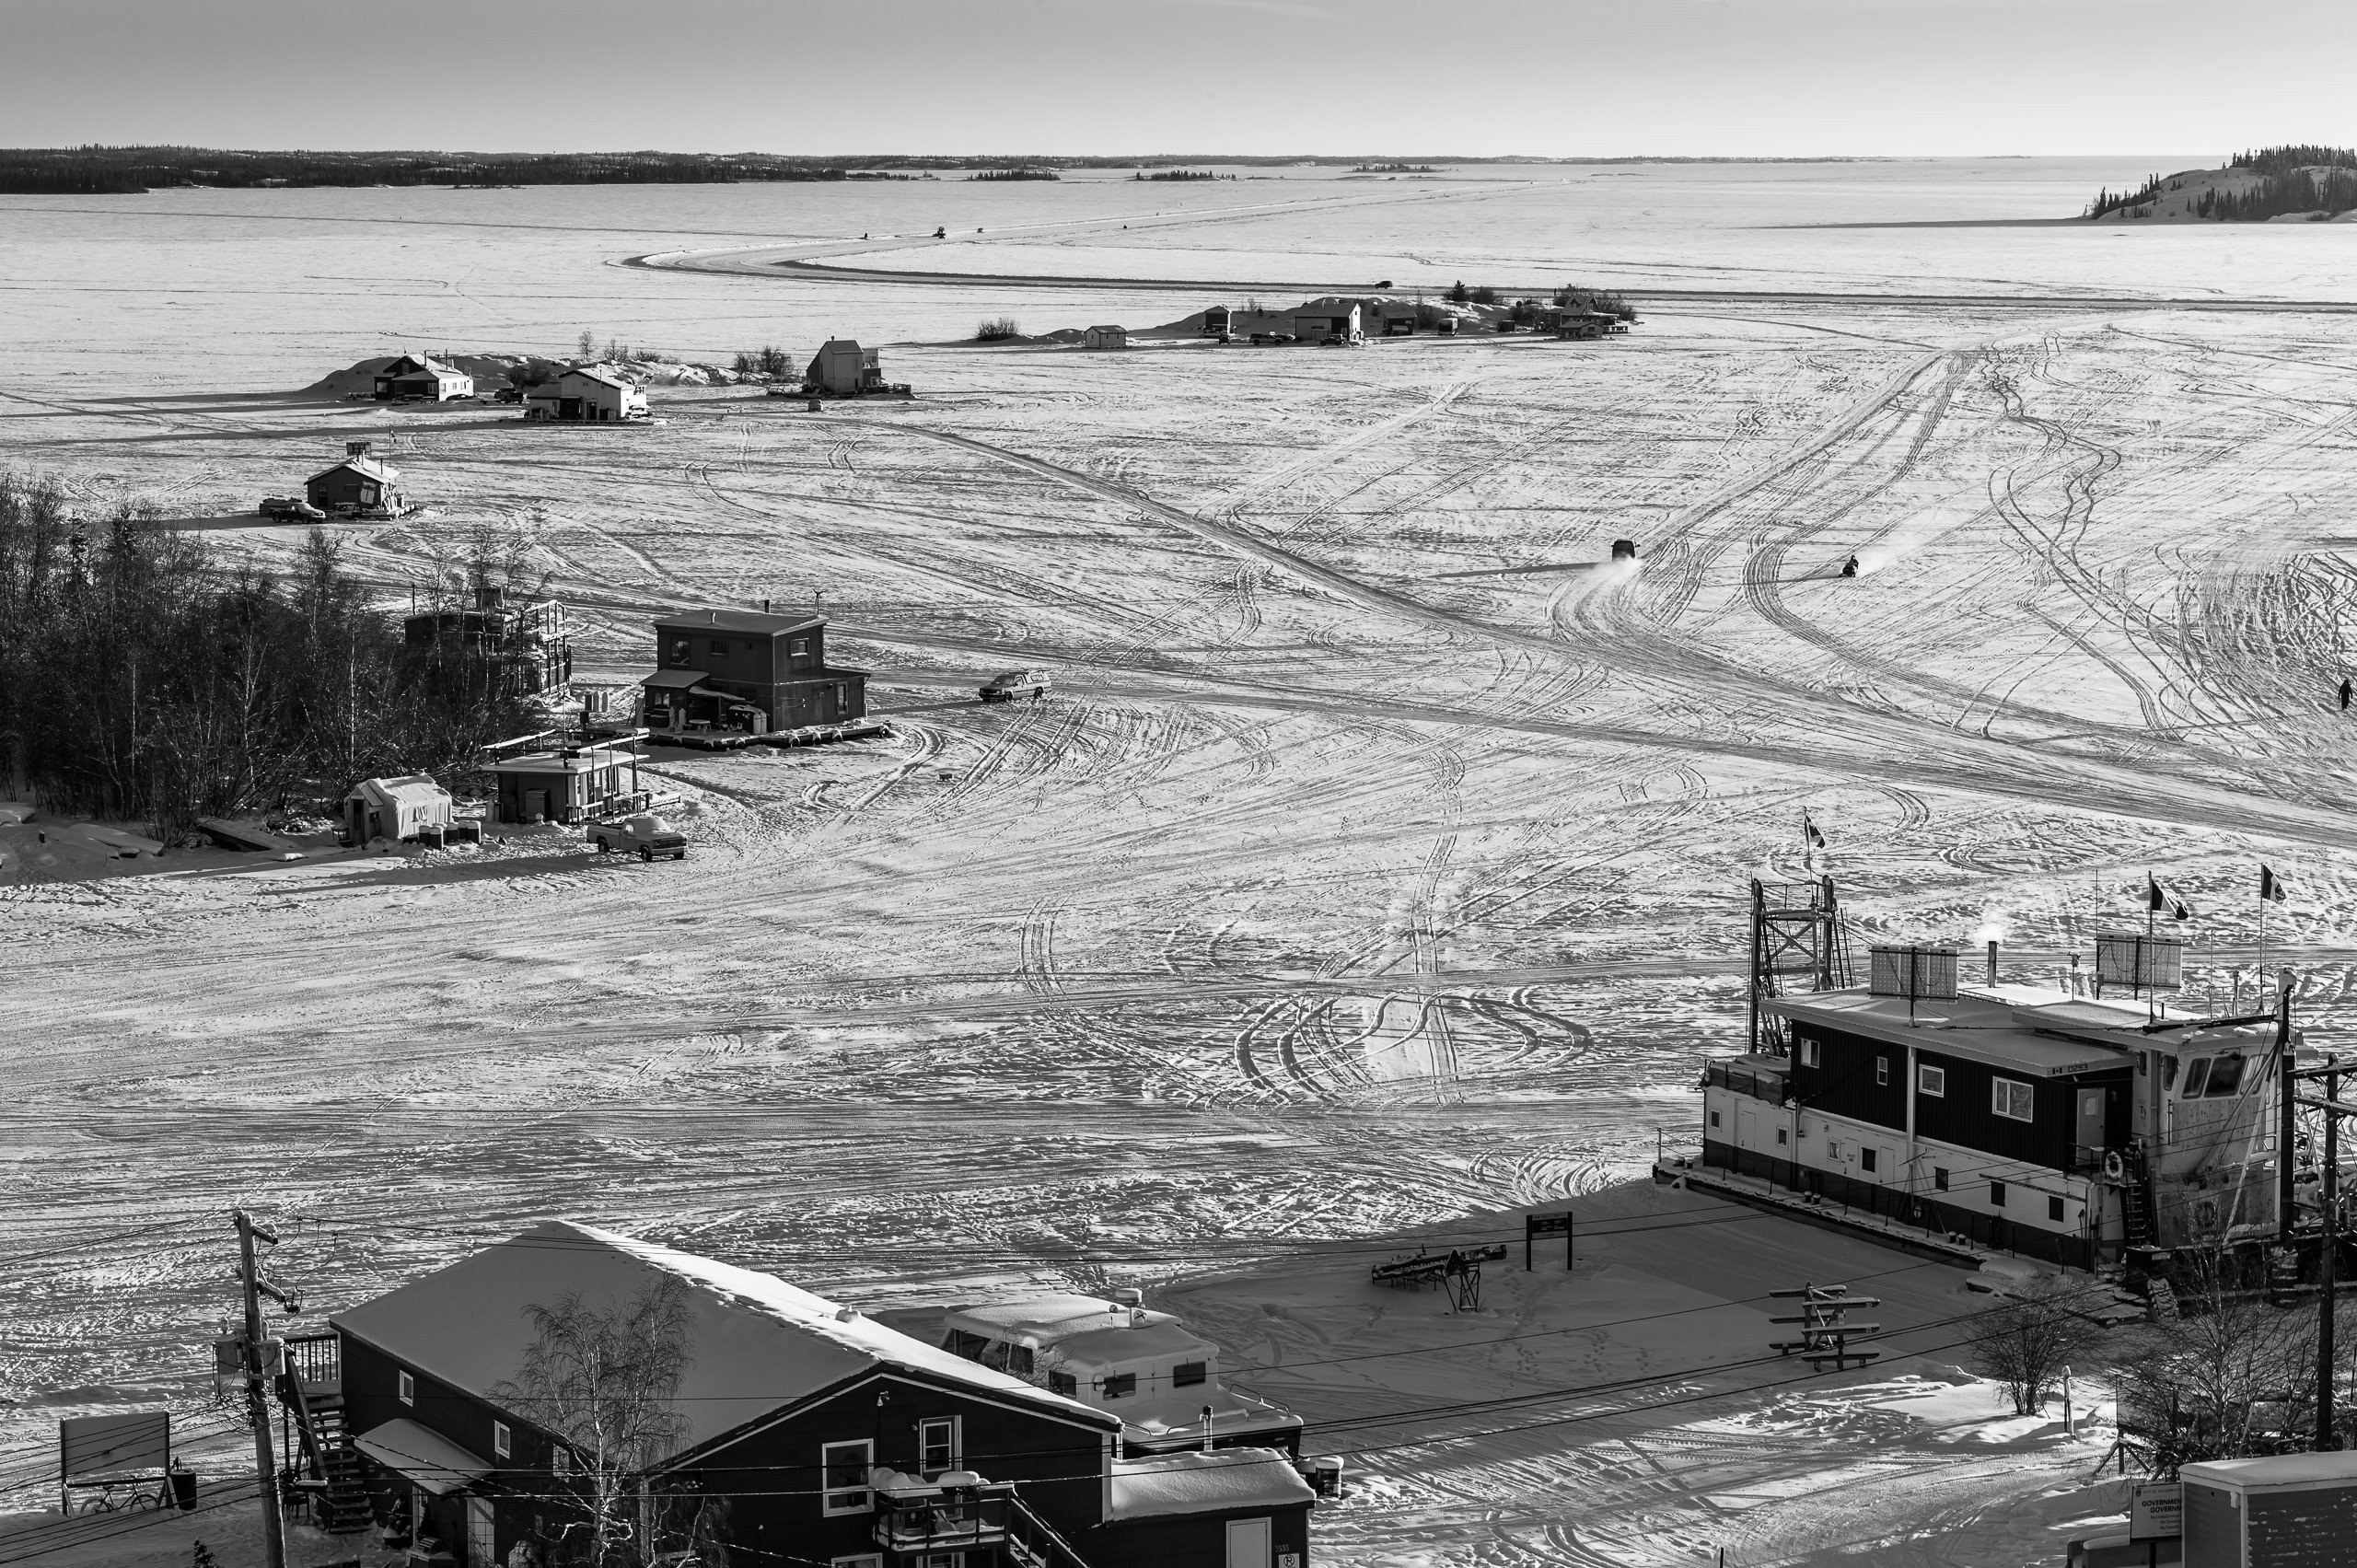 B G World Bybrett Brett Leica Photographer Yellowknife Ice Road Great Slave Lake 001